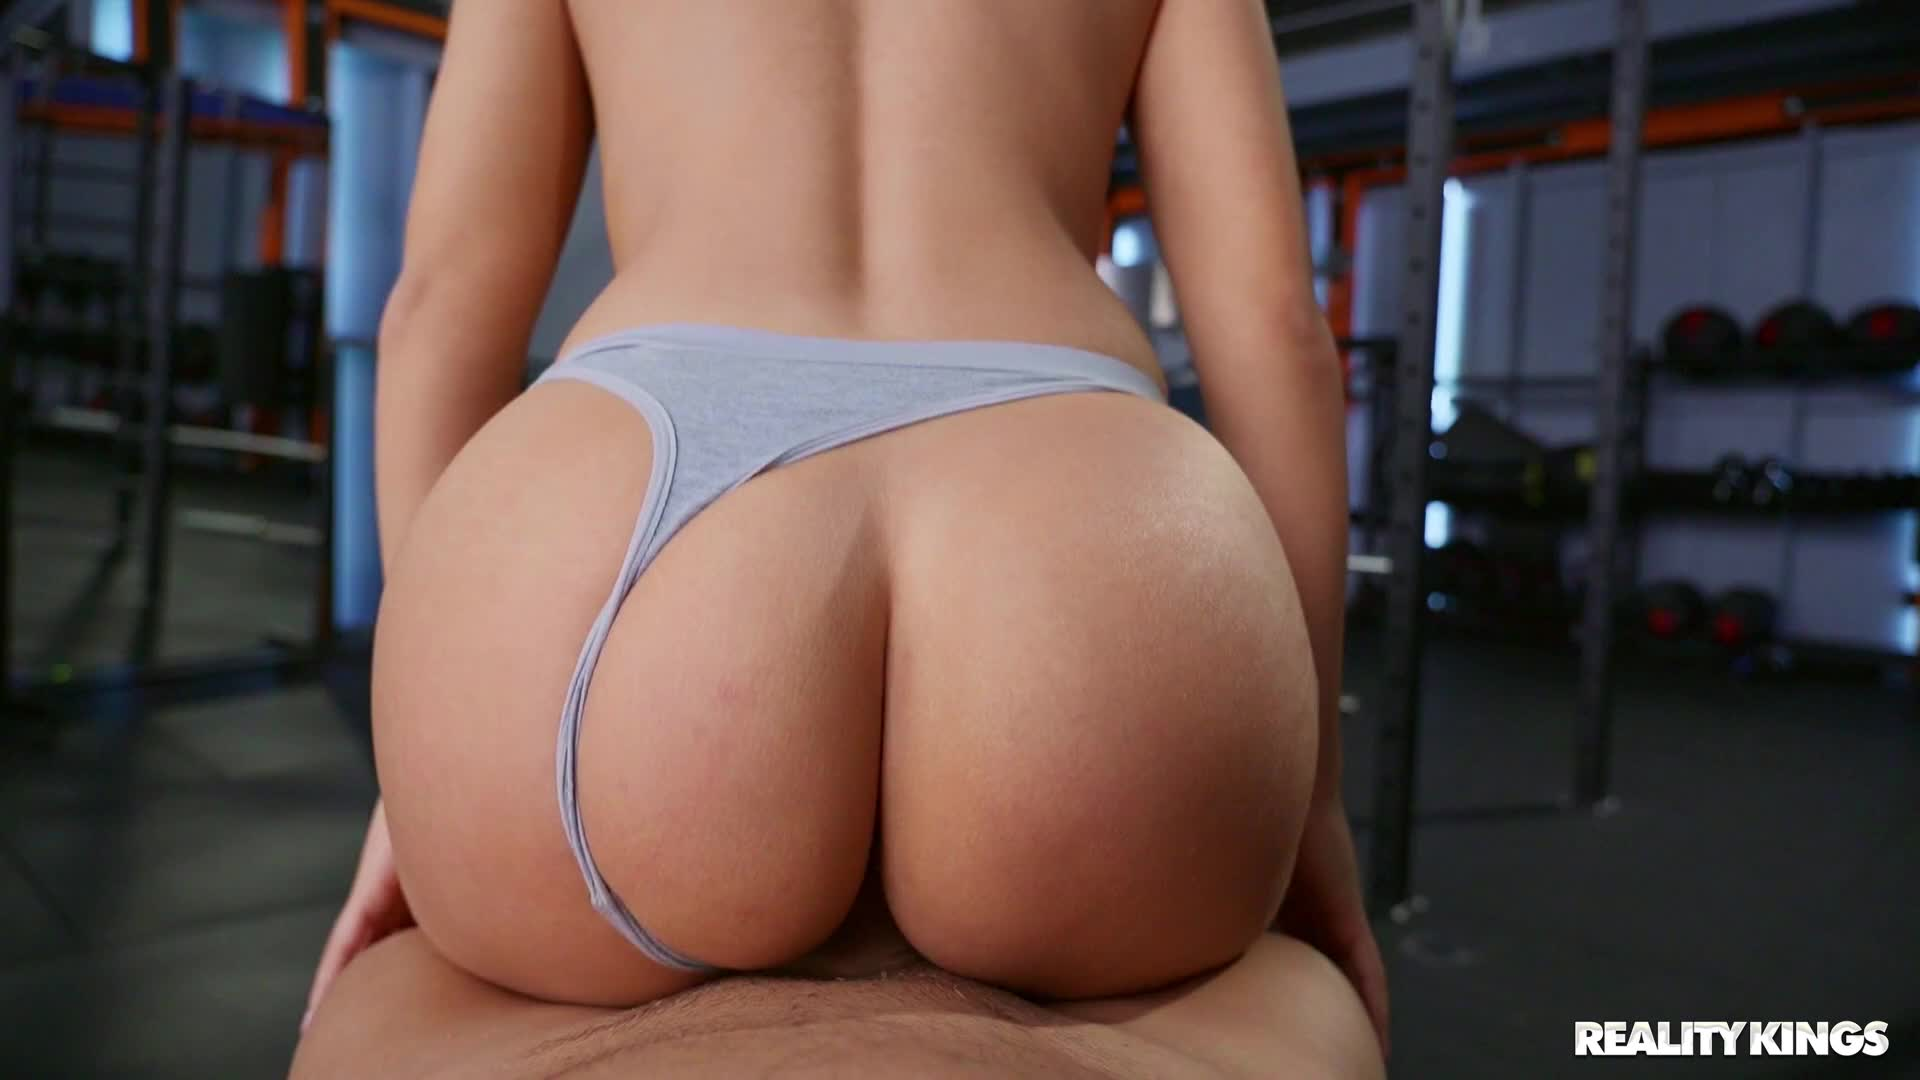 Bianka Booty riding cock with panties aside